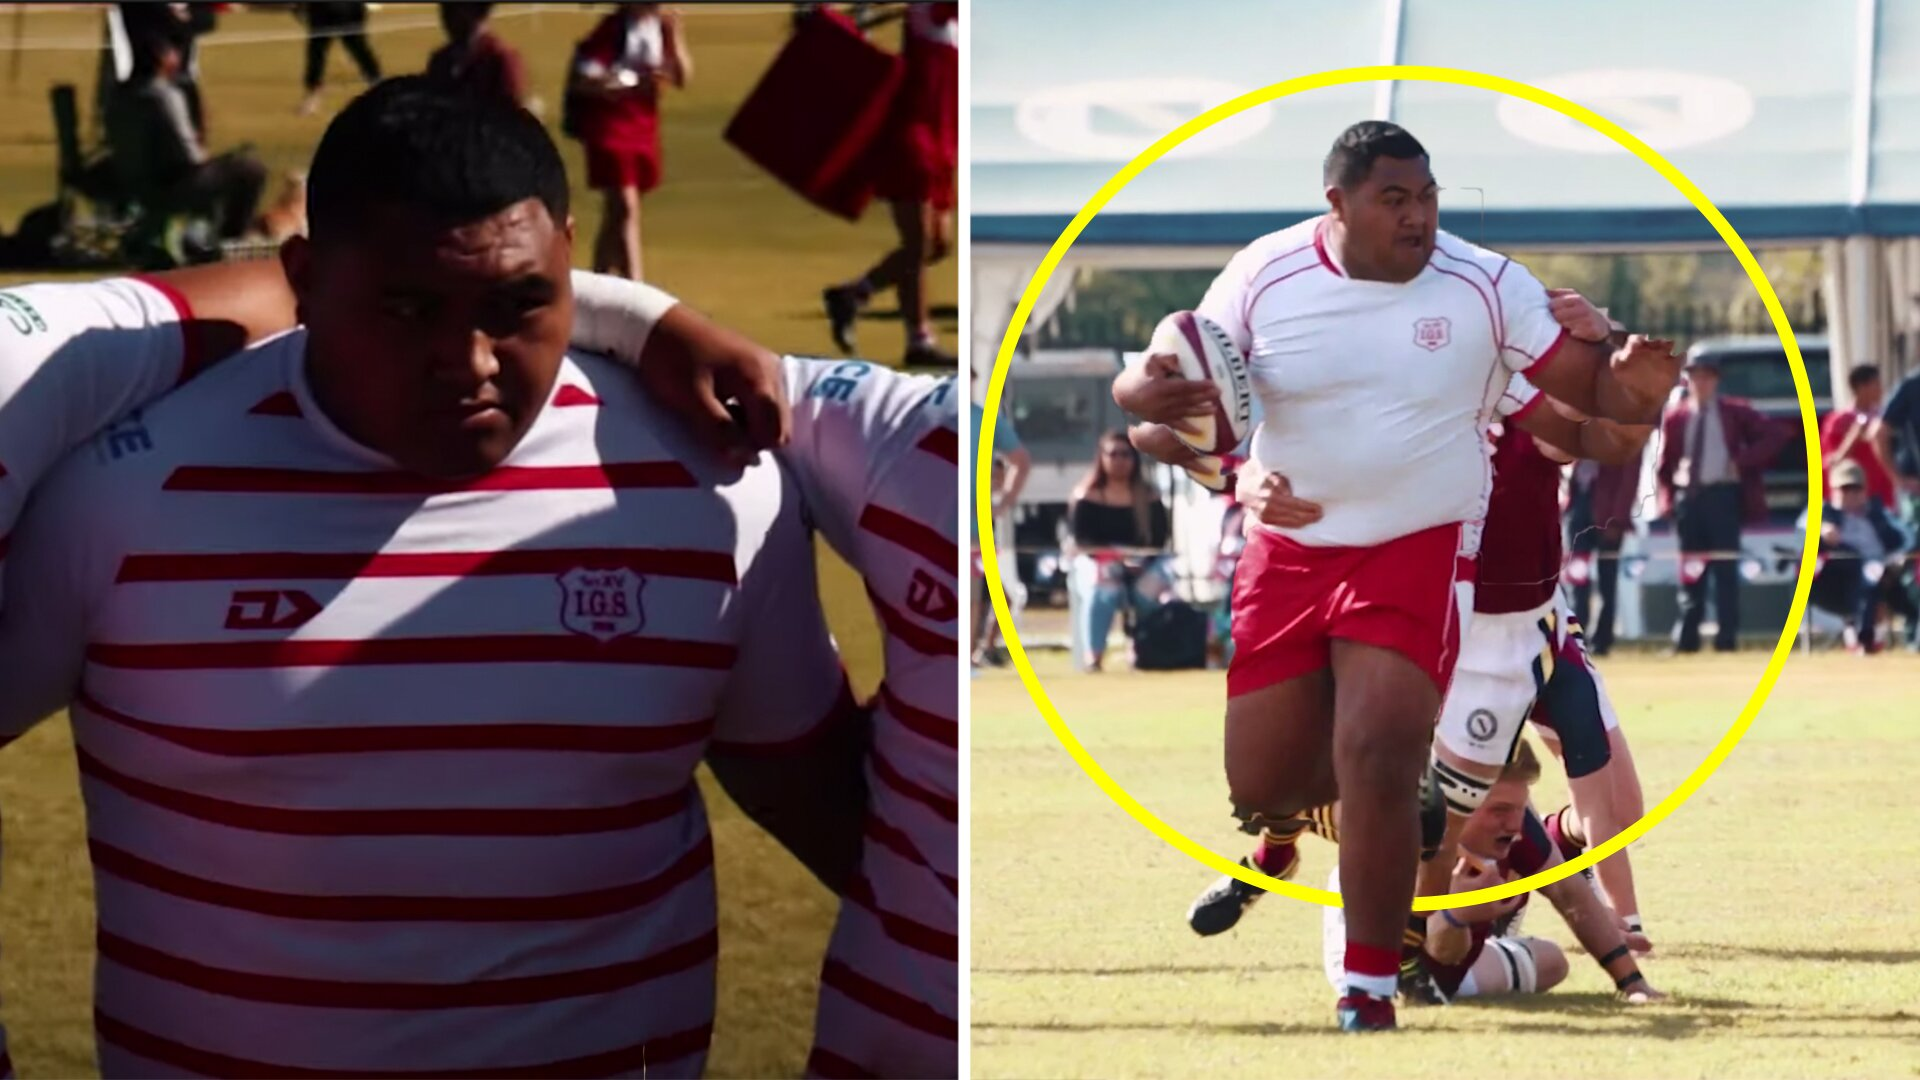 Previously unseen highlight is discovered of monumentally massive 135kg prop